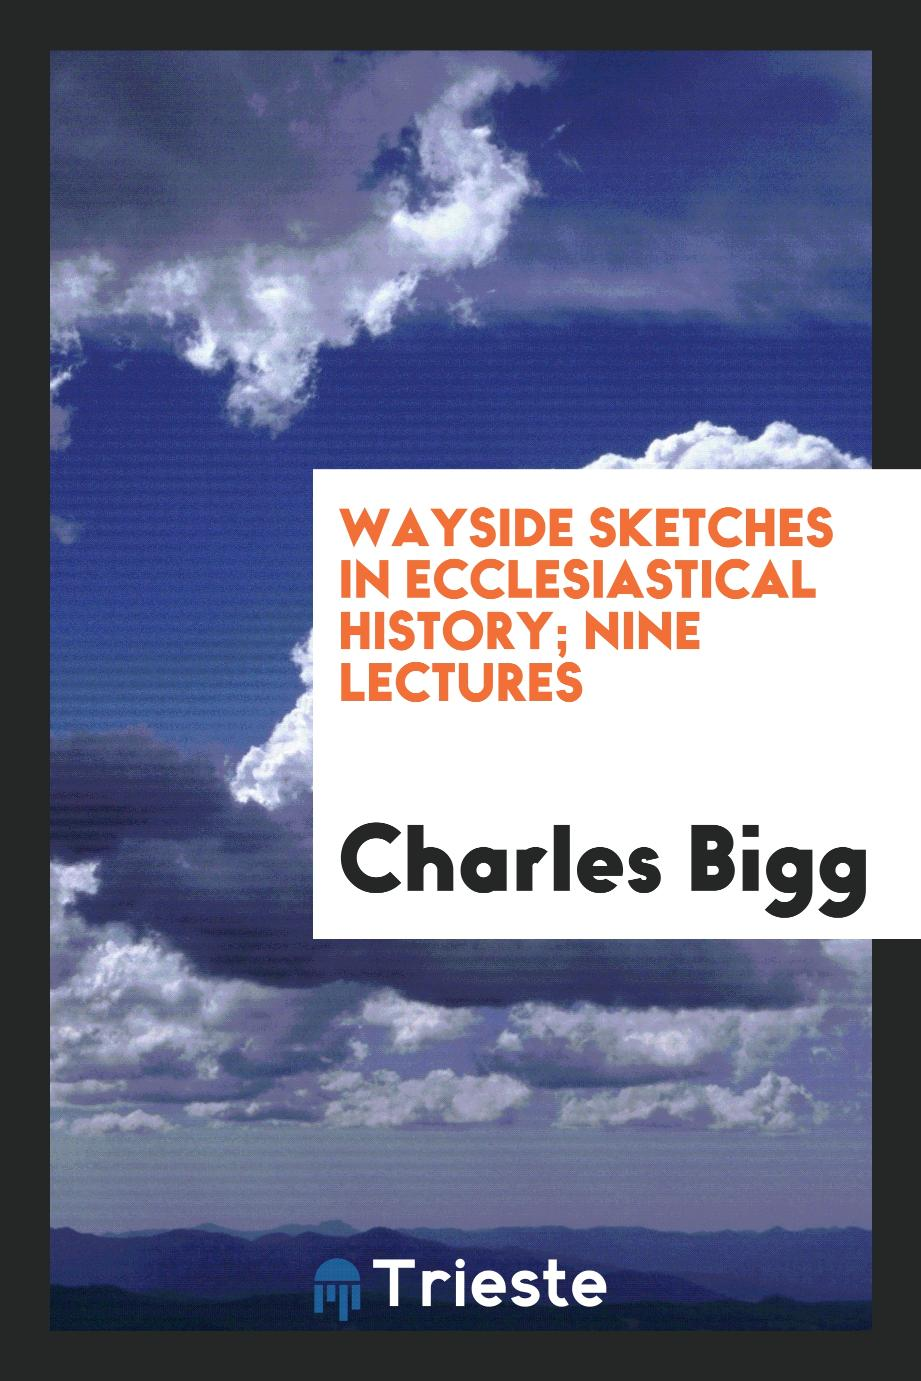 Wayside sketches in ecclesiastical history; Nine Lectures